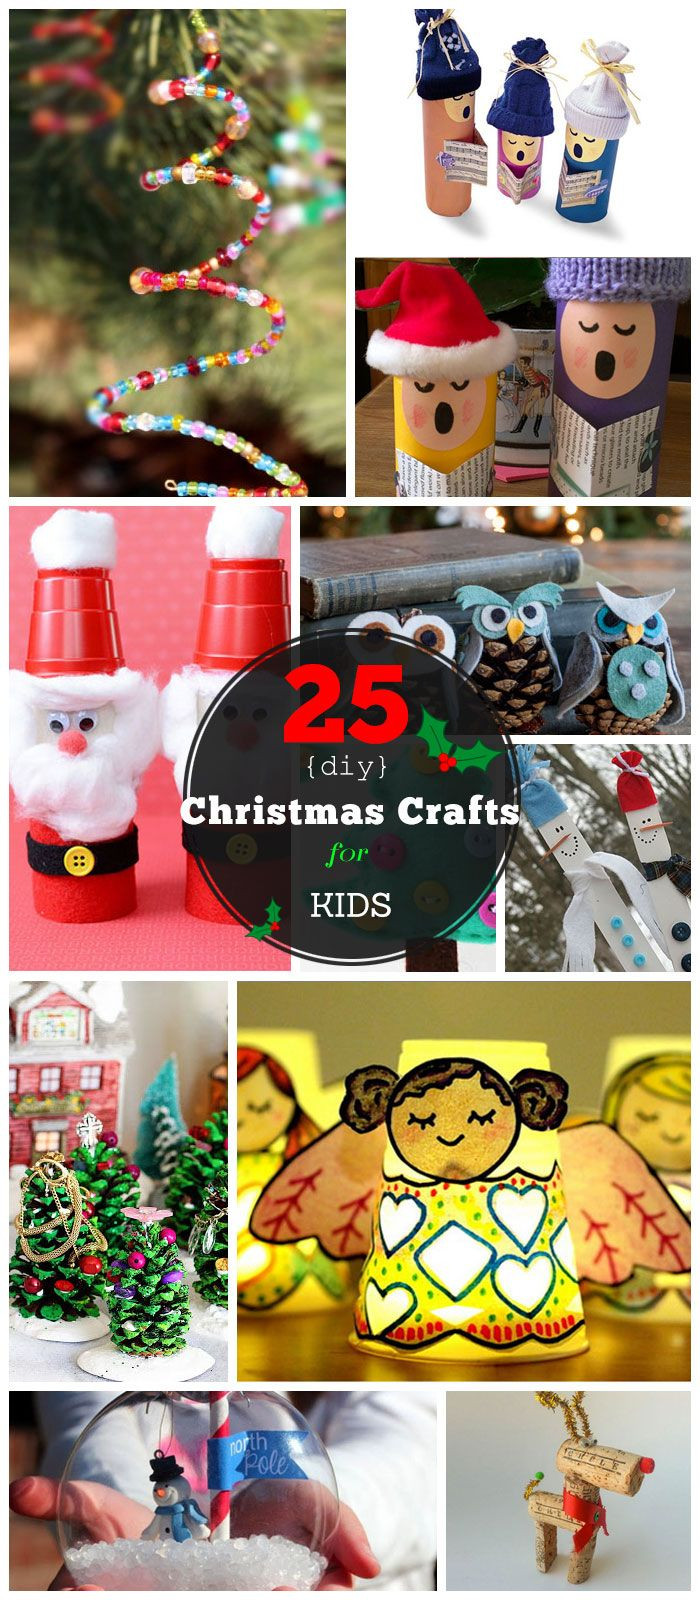 Best ideas about DIY Christmas Crafts . Save or Pin 30 Christmas Crafts For Kids to Make DIY Now.